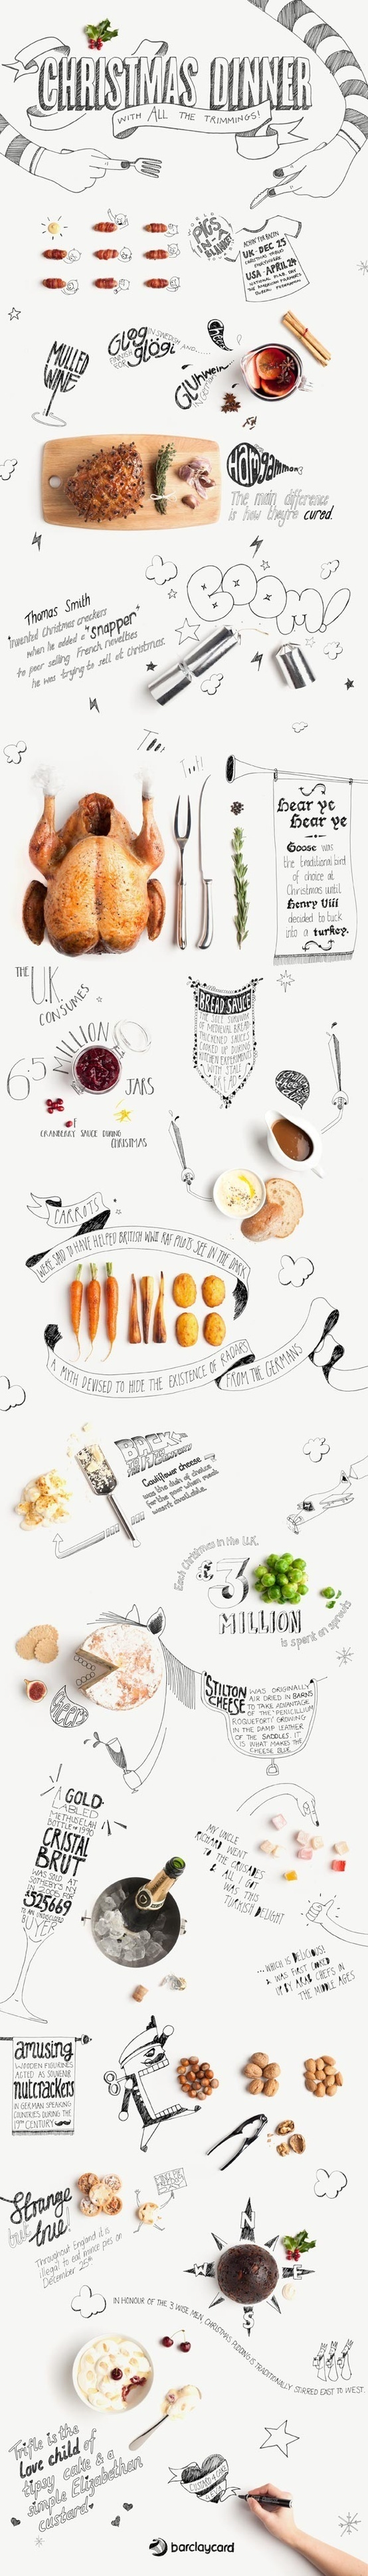 Illustrated by Laura Hunter #illustration #photography #food